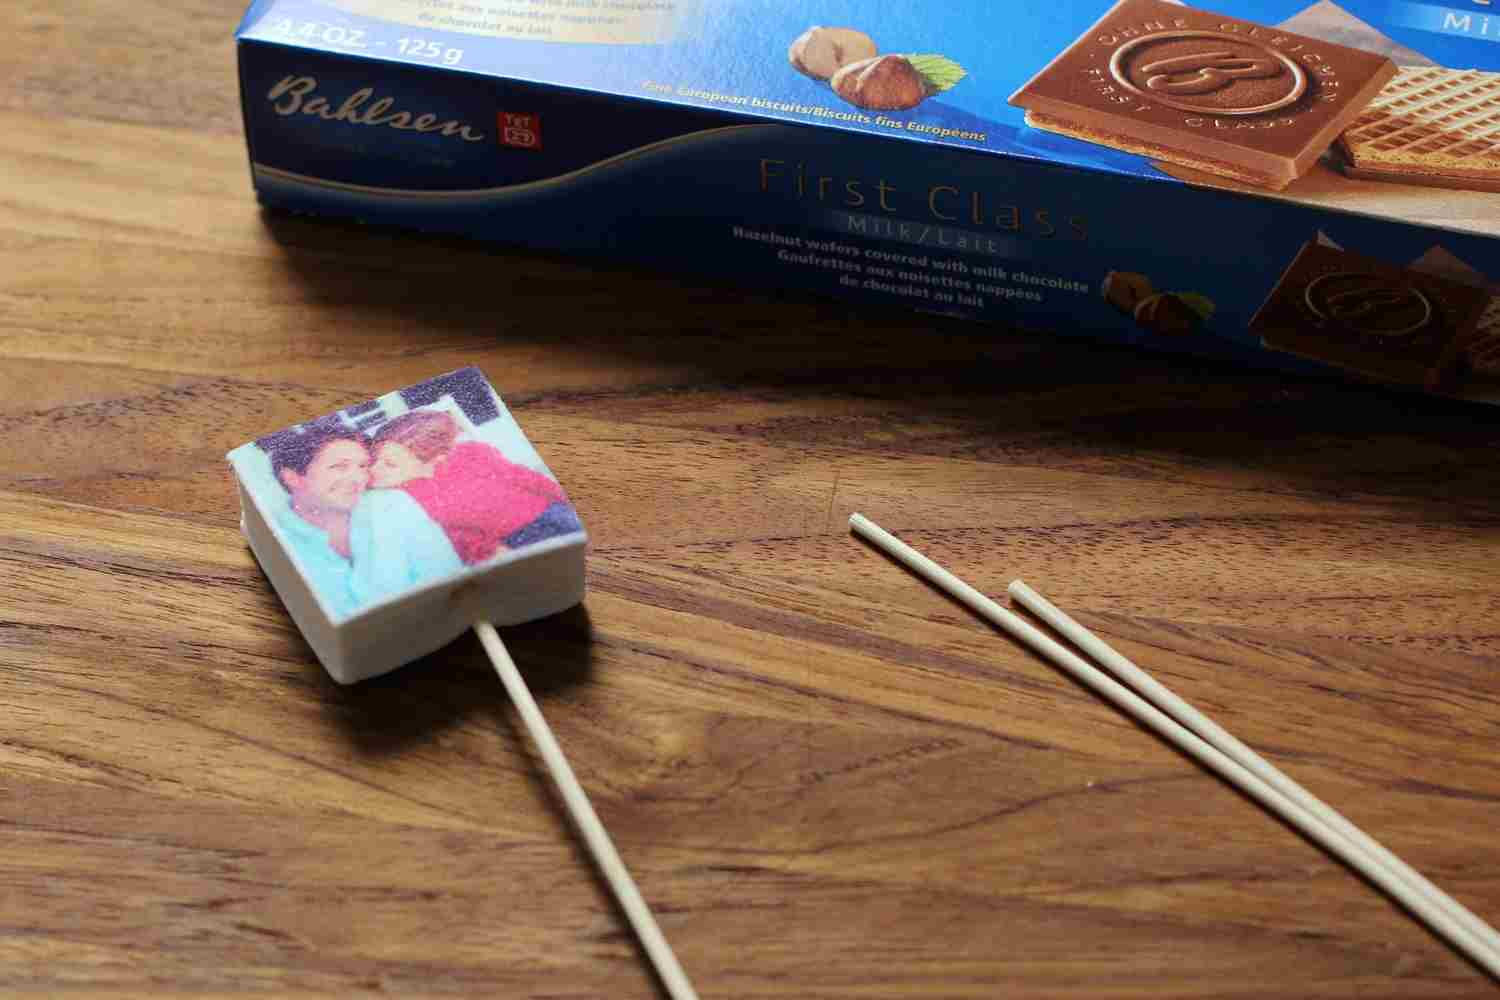 Instagram marshmallows make great gifts. Check out Boomfs!